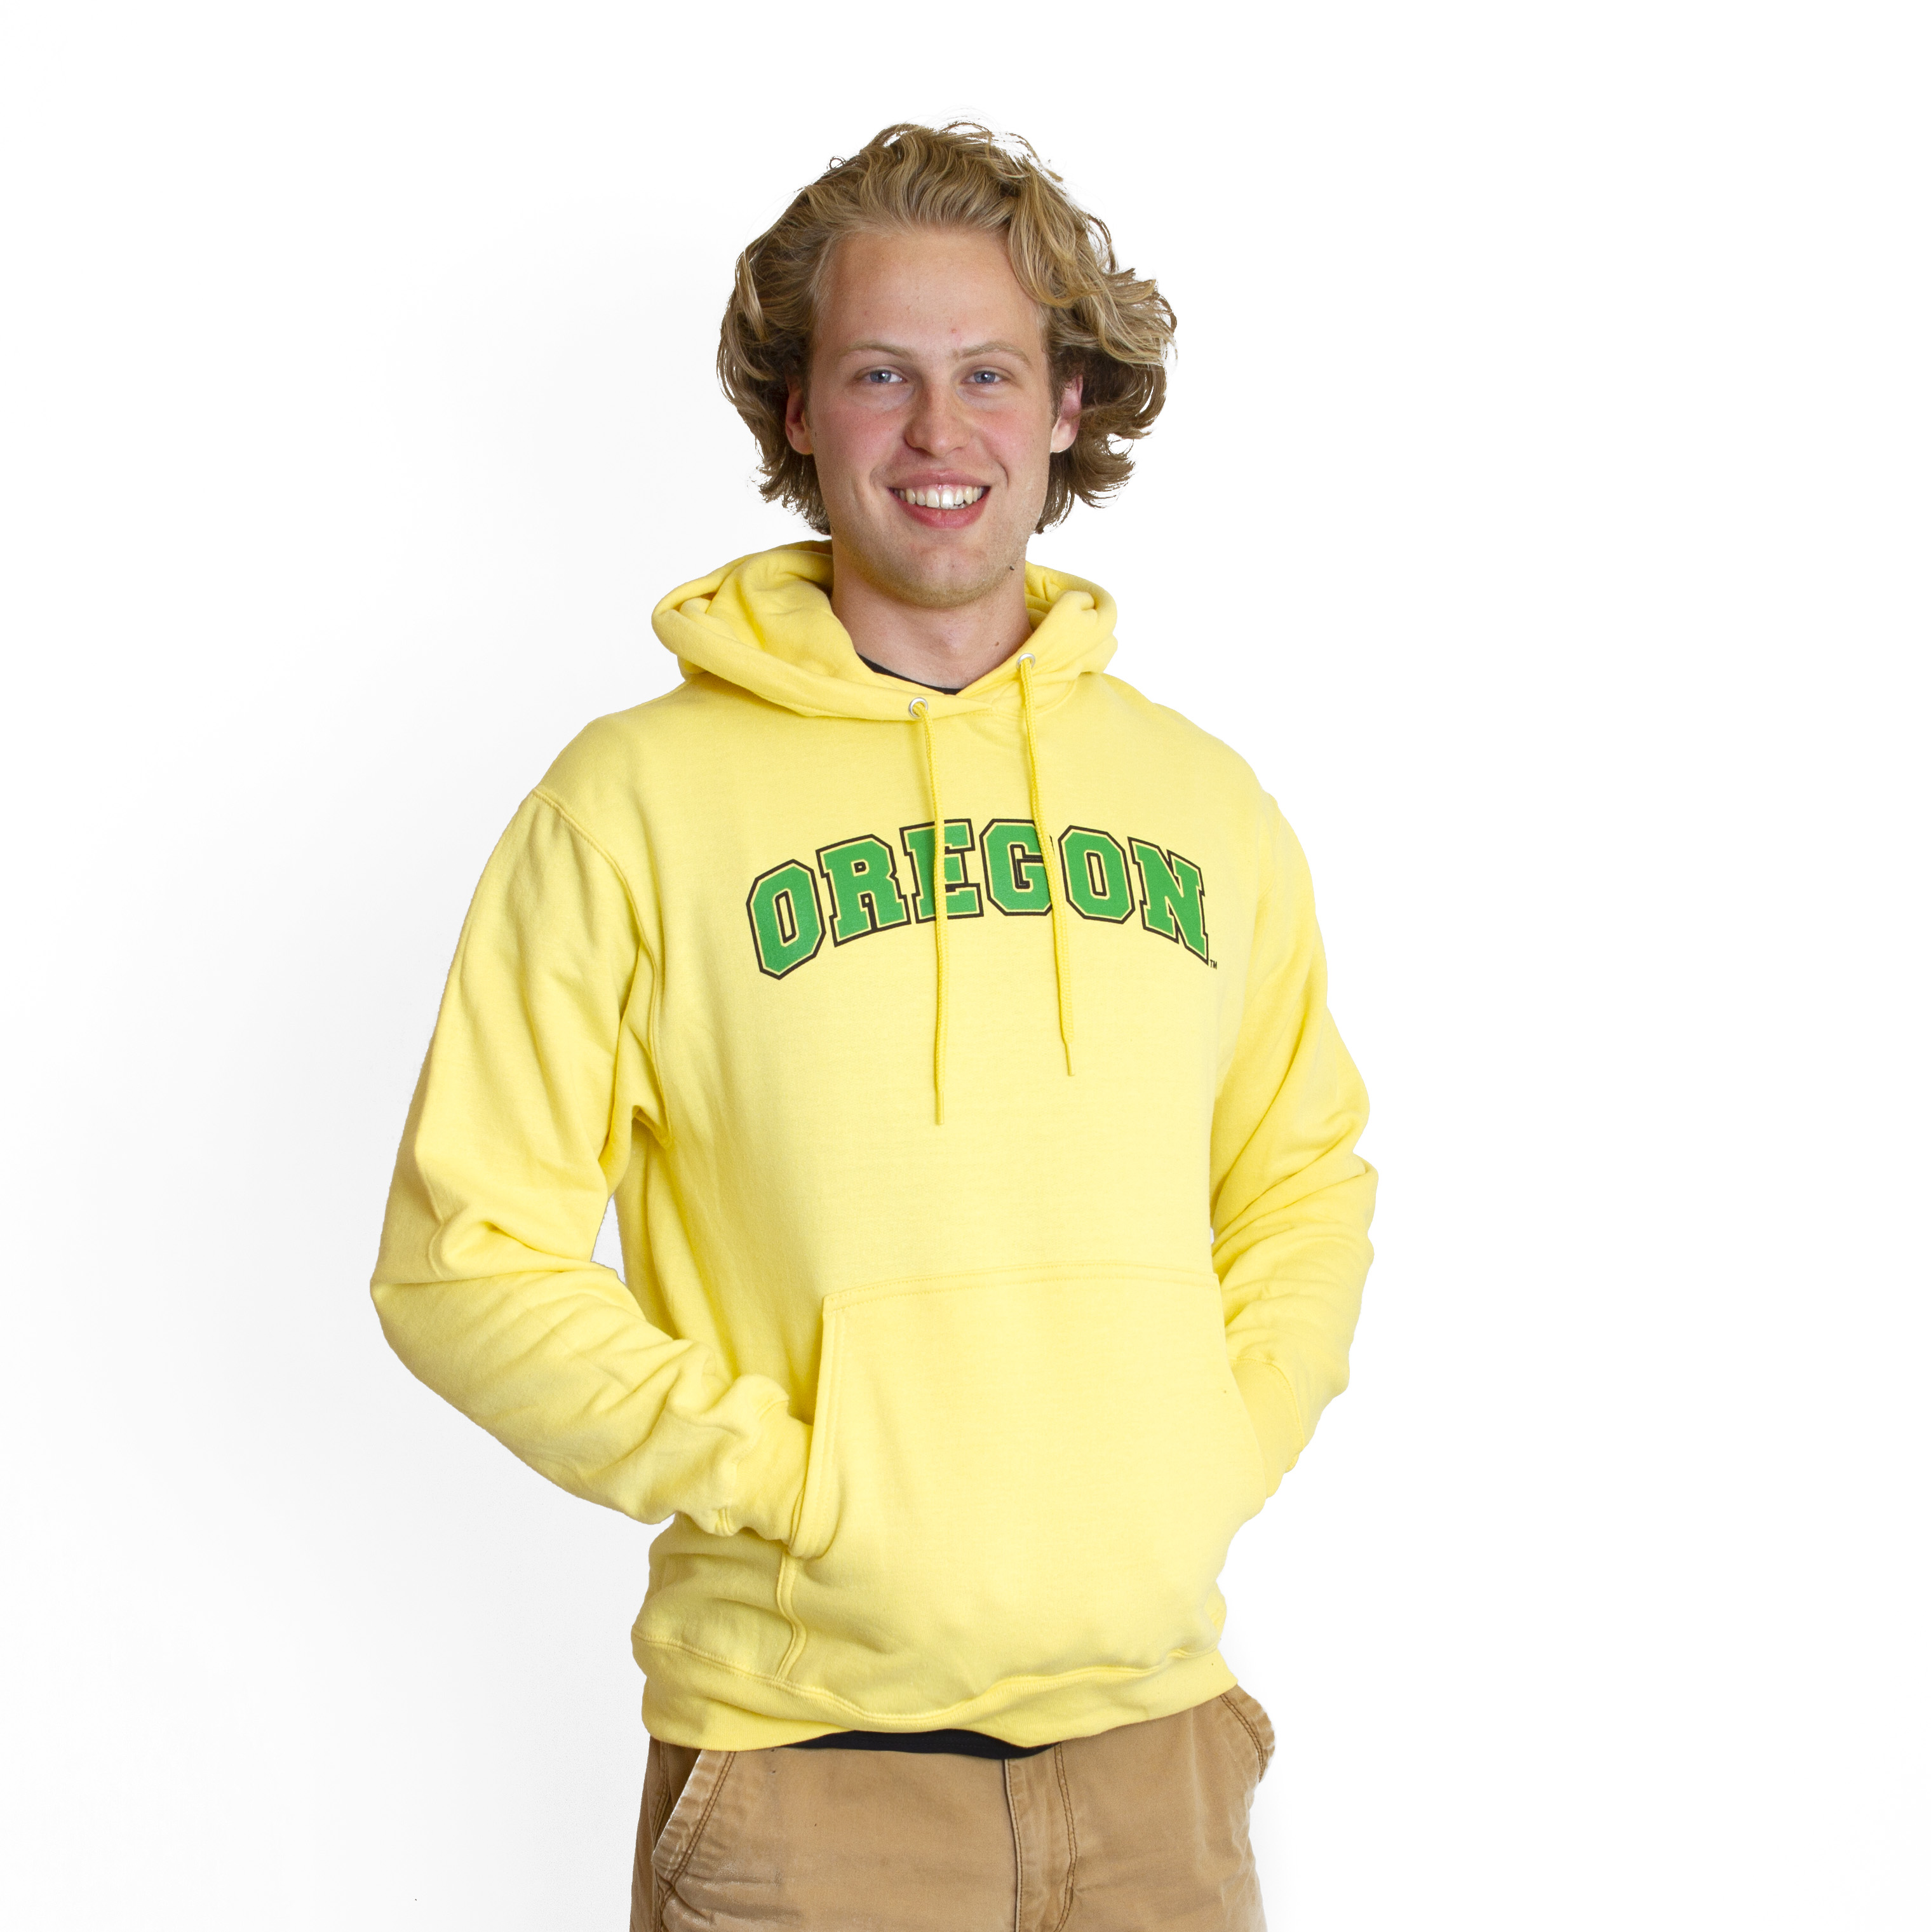 Arched Oregon, Basic, Fleece, Pullover, Hoodie, Sweatshirt